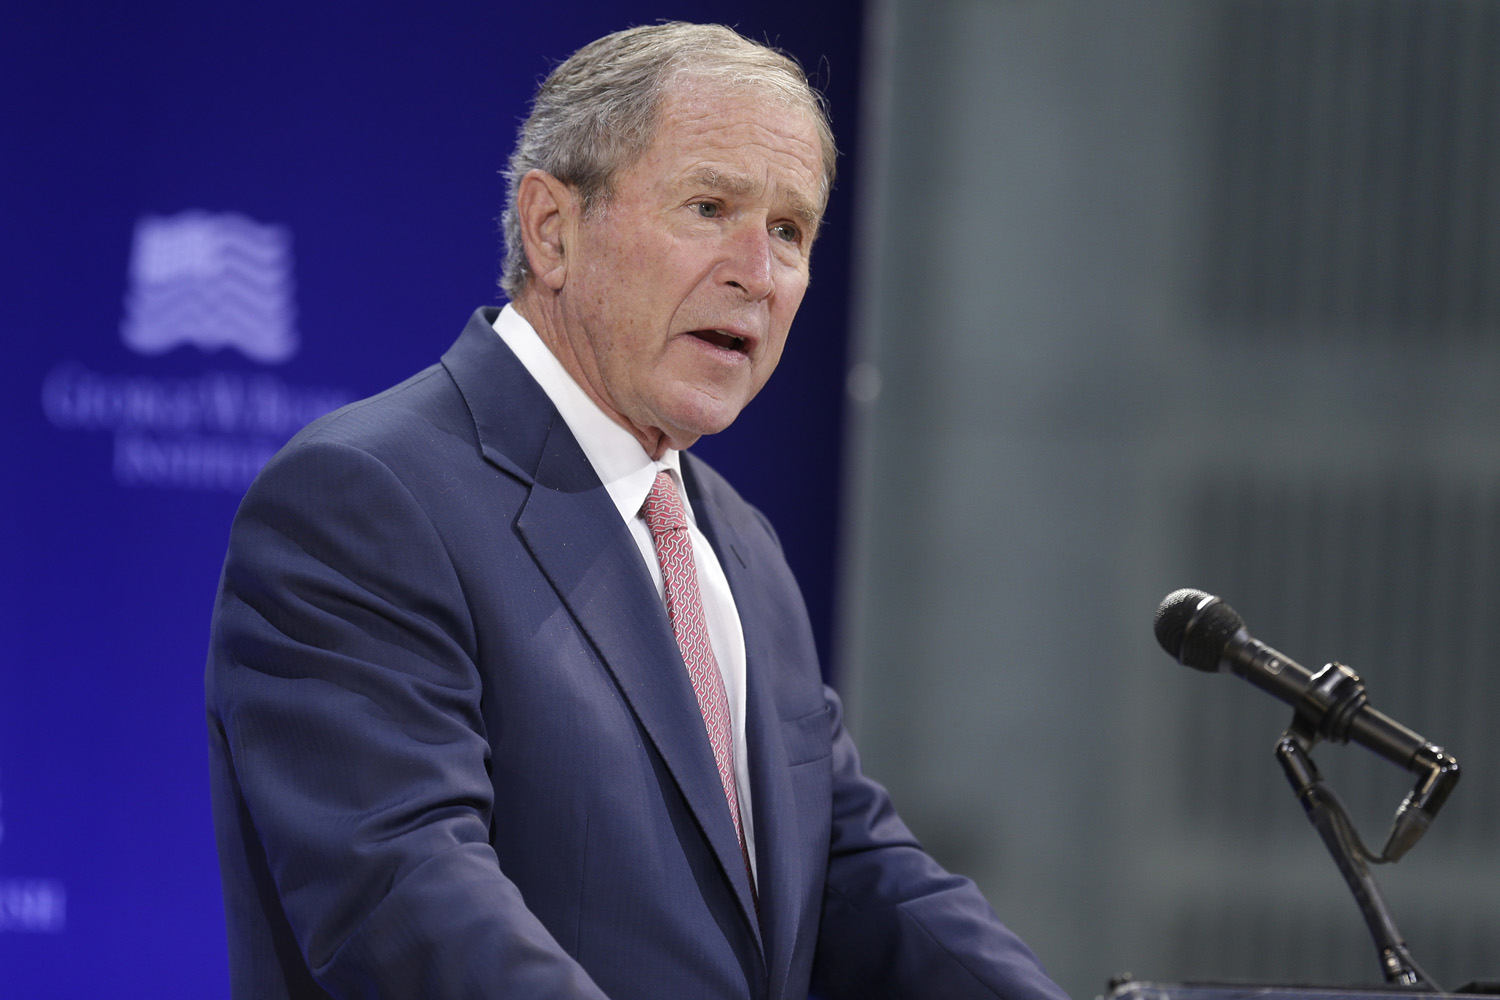 Former U.S. President George W. Bush speaks at a forum sponsored by the George W. Bush Institute in New York, Thursday, Oct. 19, 2017. (Seth Wenig/AP)